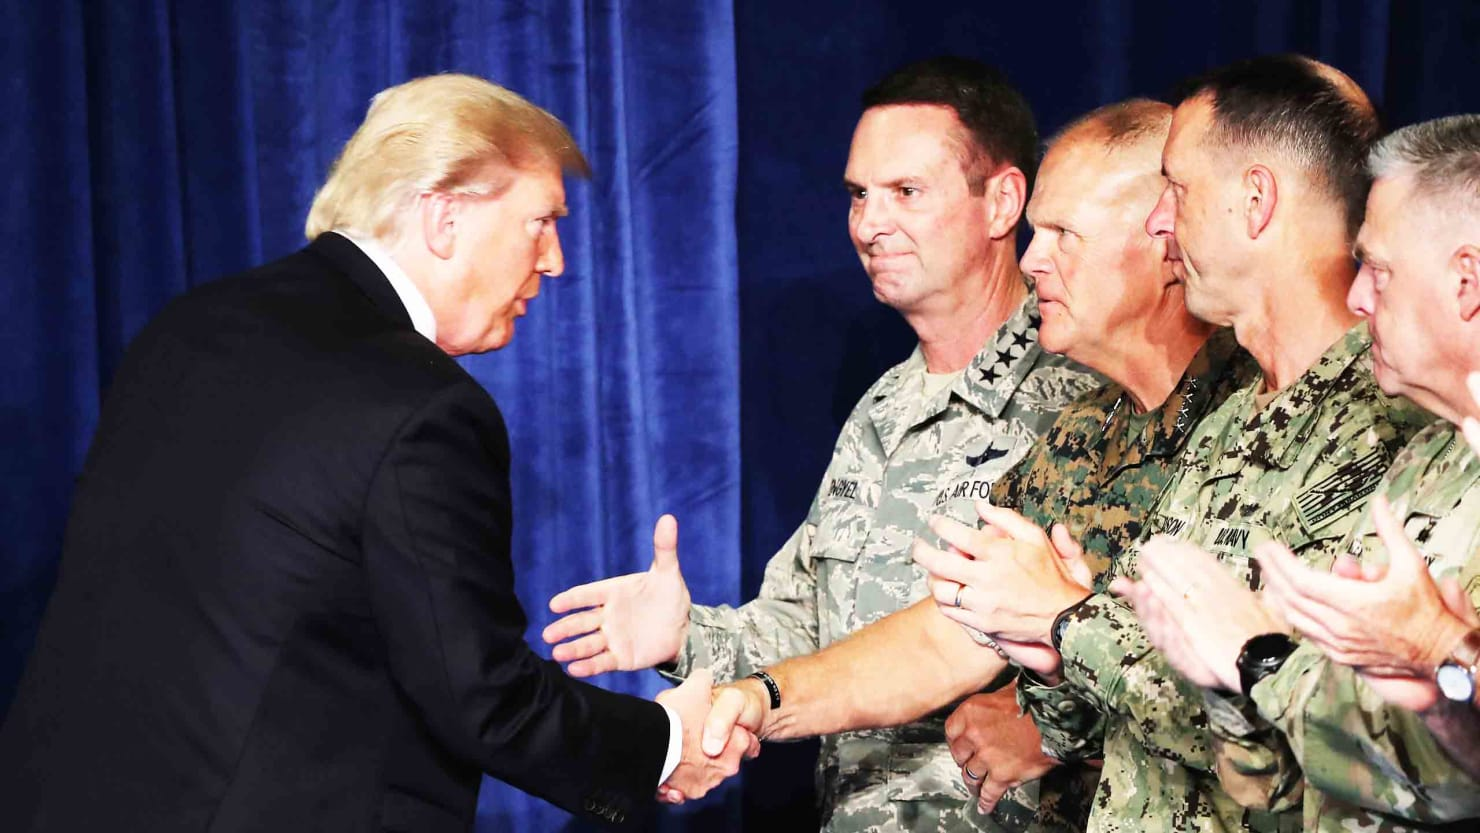 Trump's Base Bewails Unlimited War after His Afghanistan policy speech.